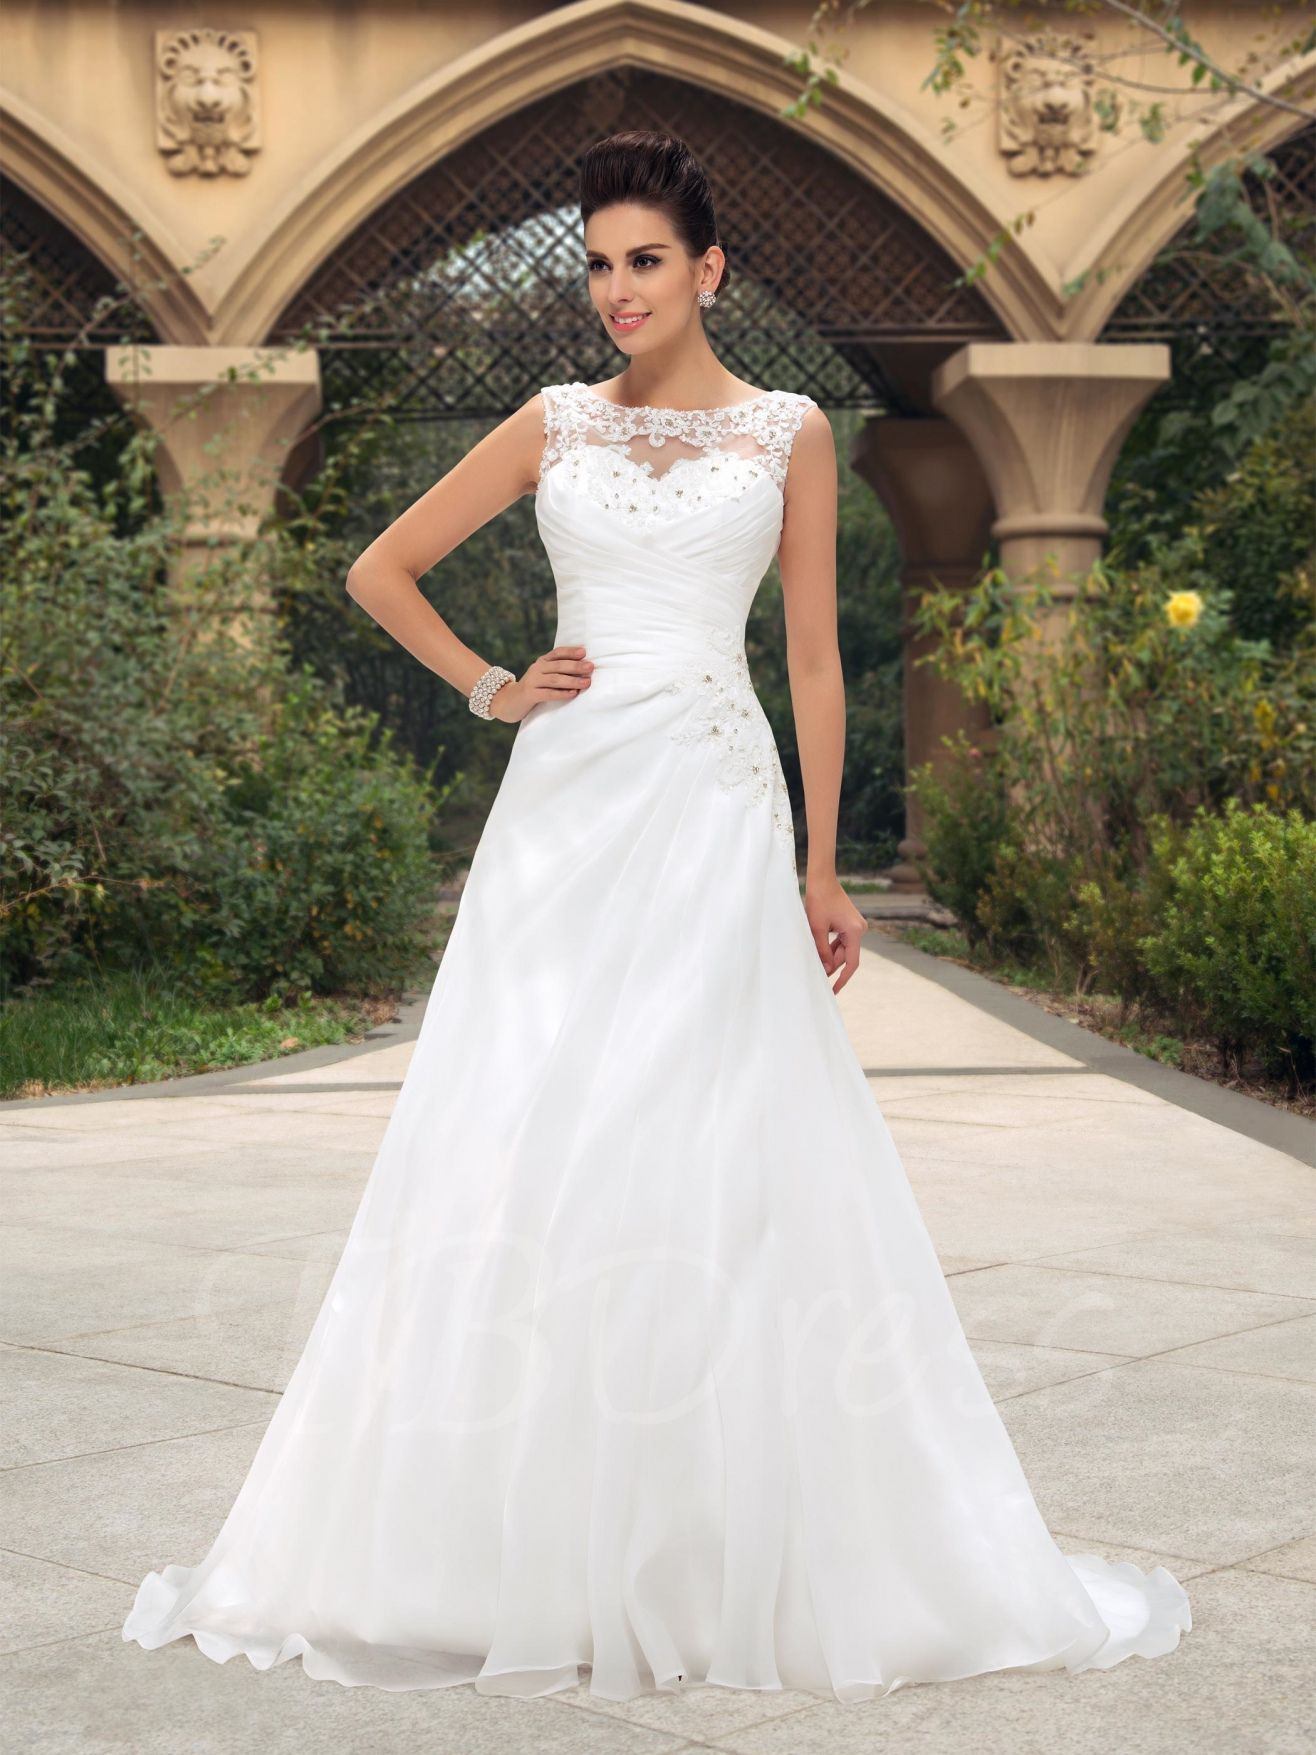 50+ Low Cost Wedding Dresses   Best Wedding Dress For Pear Shaped Check  More At